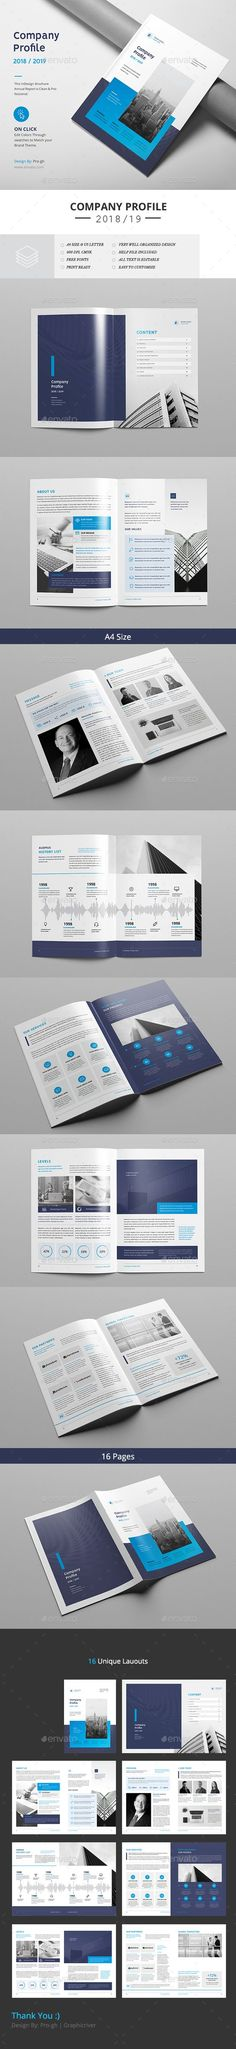 Company Profile 2018 Teacher Brochure, Corporate Brochure, Business Brochure, Company Profile Template, Company Profile Design, Stationery Printing, Stationery Design, Travel Brochure Template, Brochure Design